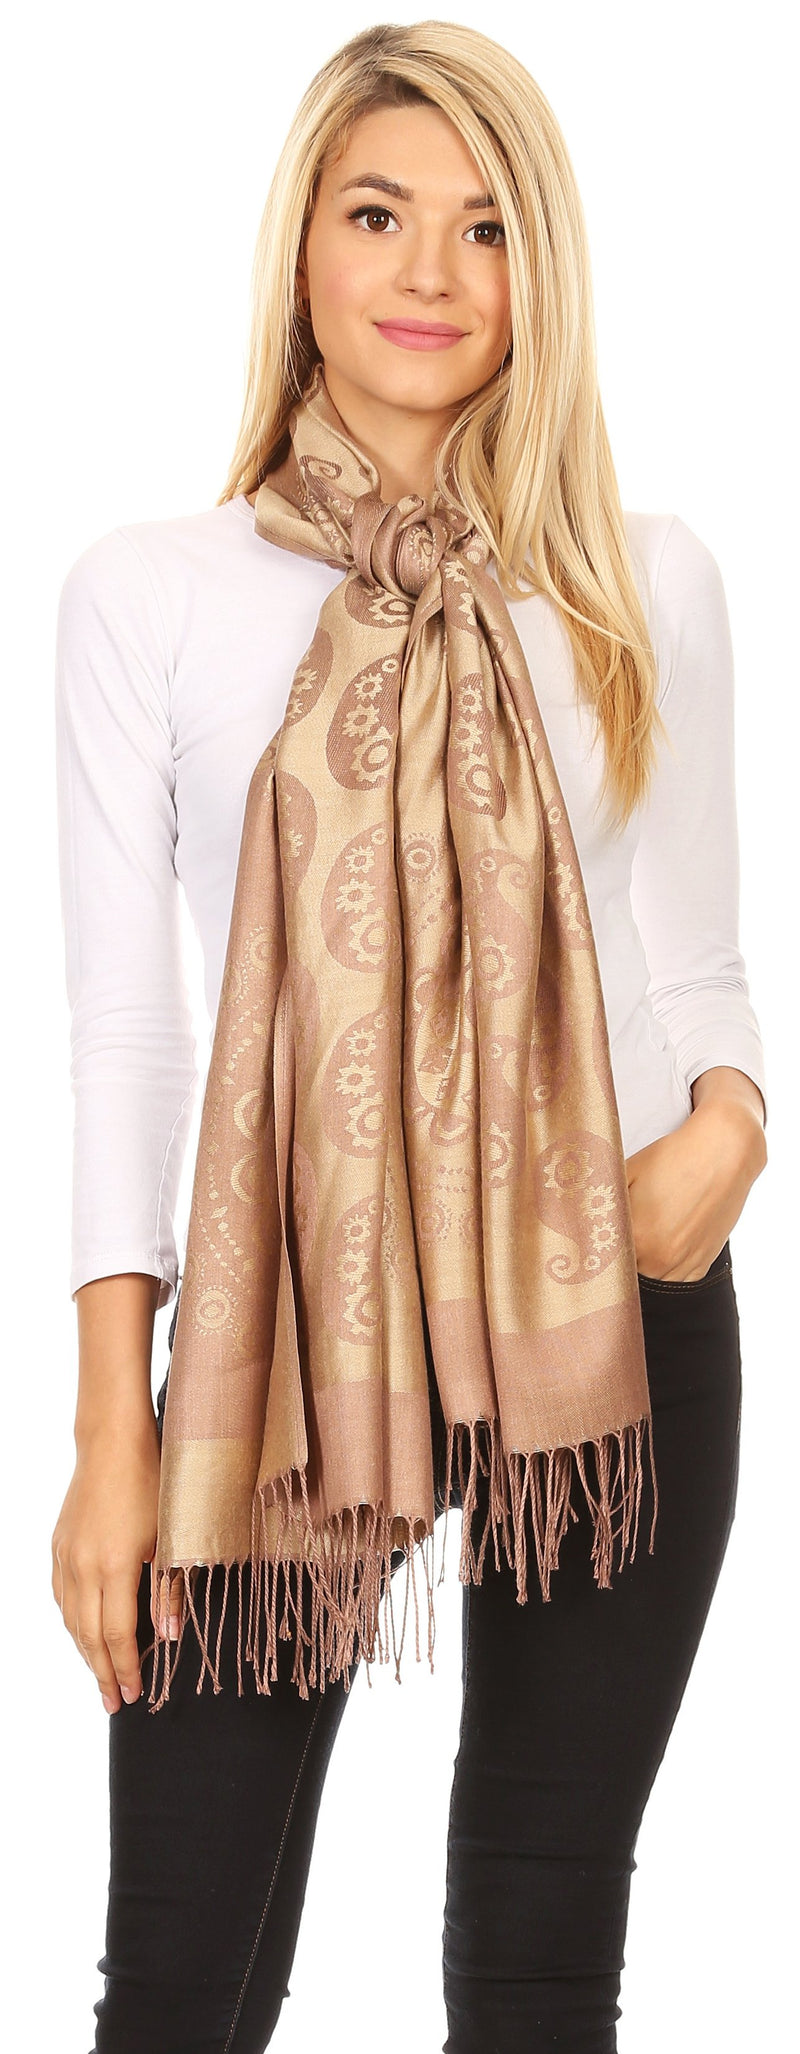 Sakkas Mia Reversible Brocade Paisley Scarf Wrap Shawl Soft and Light